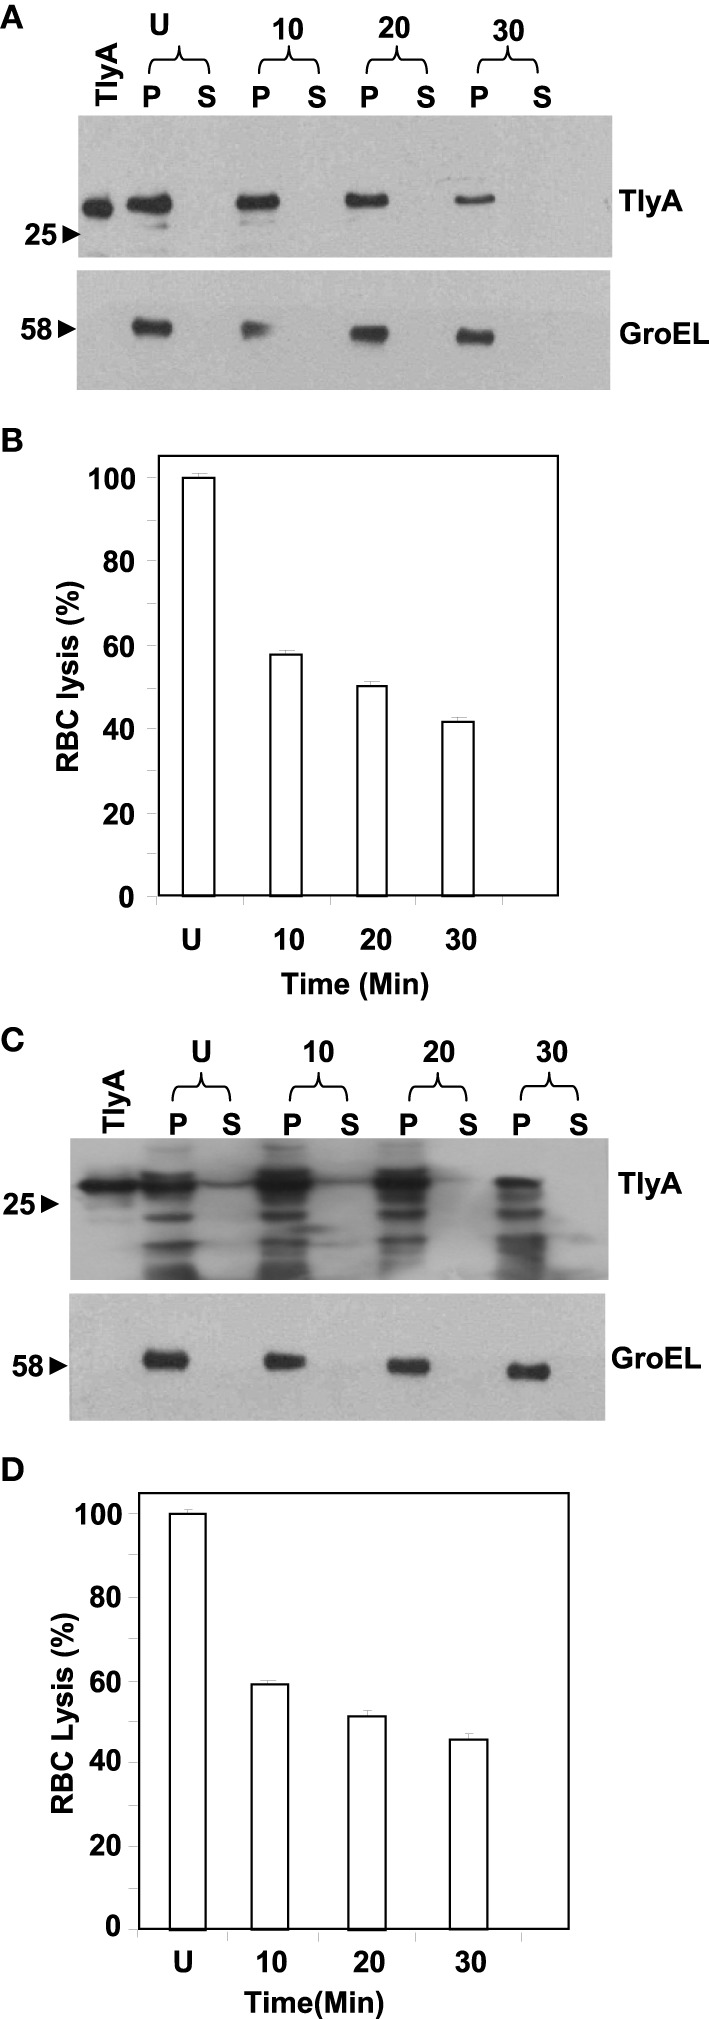 Susceptibility to extrinsic proteases of TlyA expressing  M. smegmatis  (A,B) and  E. coli  (C,D): M. smegmatis /TlyA  (C)  and  E. coli /TlyA  (D)  were treated with Proteinase K and the resultant samples were processed for 12% SDS–PAGE and detected with anti-TlyA antibody. P and S indicate pellet and supernatant obtained at indicated times in minutes. The antibodies used for the detection of the blot are indicated on the right side. The lane marked with TlyA indicates purified TlyA as control. The  (B,D)  respectively represent the hemolytic activity of the Proteinase K treated bacteria, shown in  (A , C ). The labels are indicated below the bars. Proteinase K treated bacteria.(7 × 10 7 ) were incubated with 1% rabbit RBC at room temp for 24 h to assess the degree of lysis by measuring the absorbance at 540 nm of RBC free supernatant.